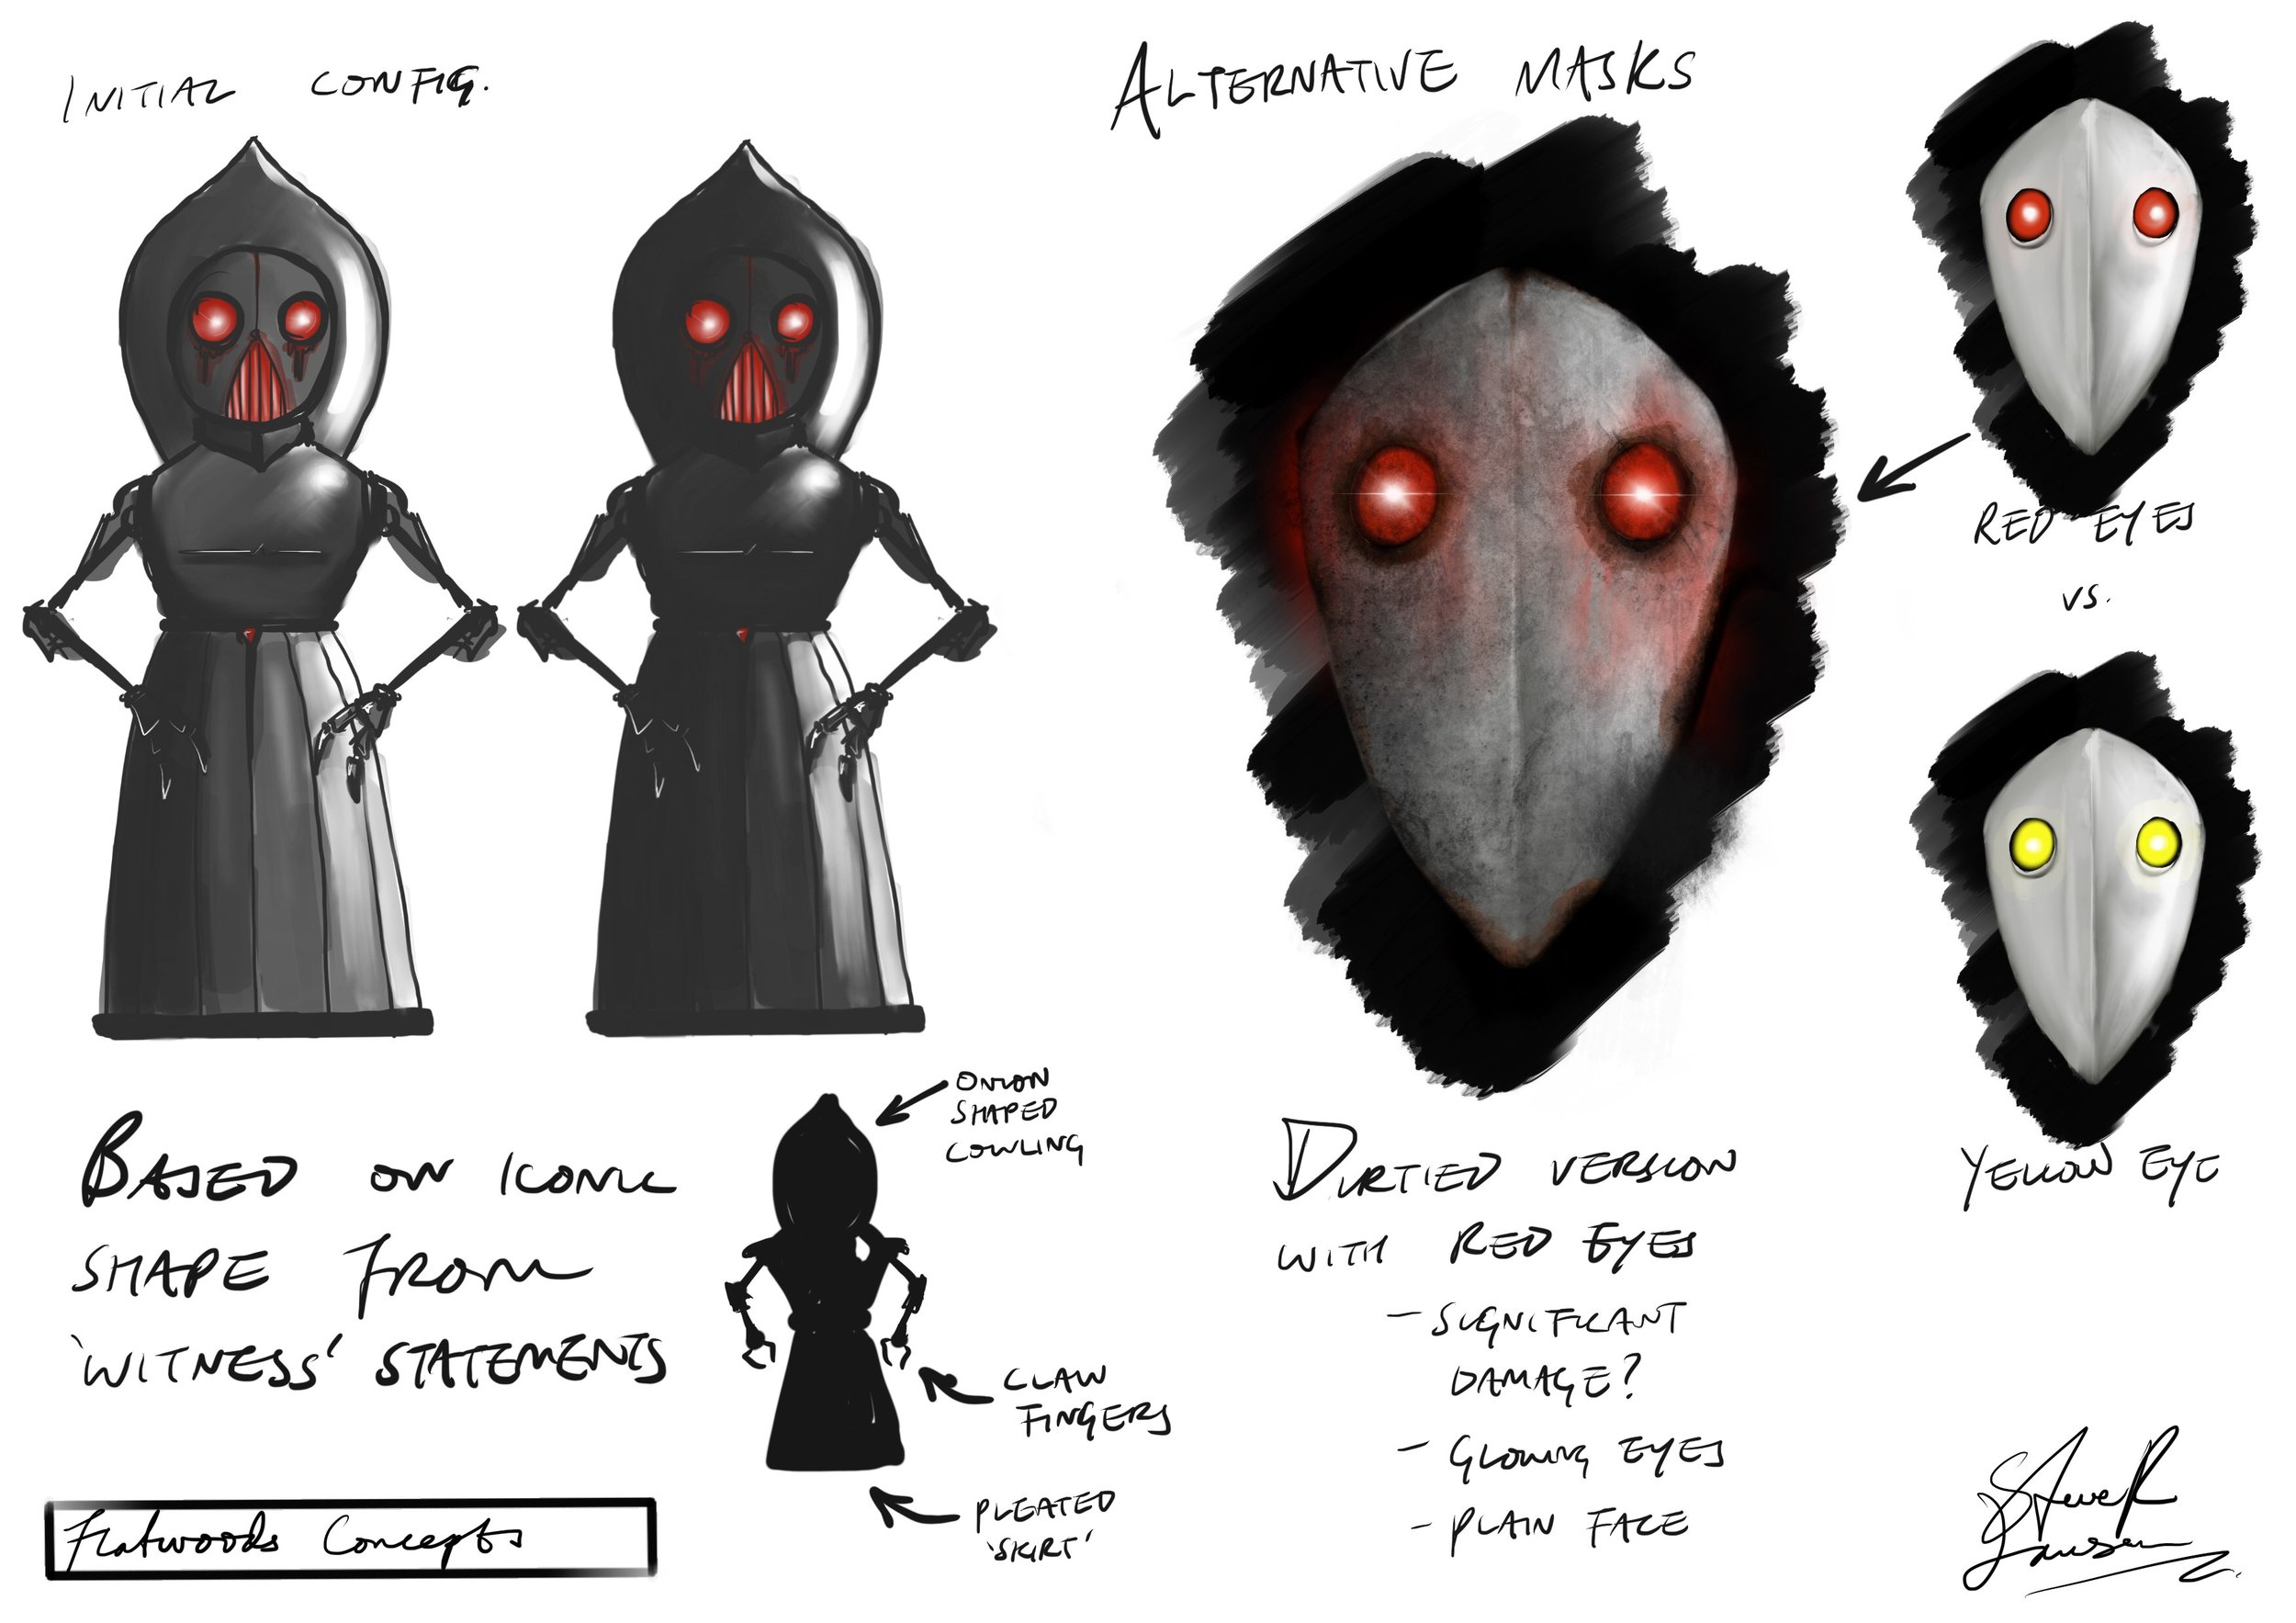 Flatwoods 'Monster' - Creature Concepts